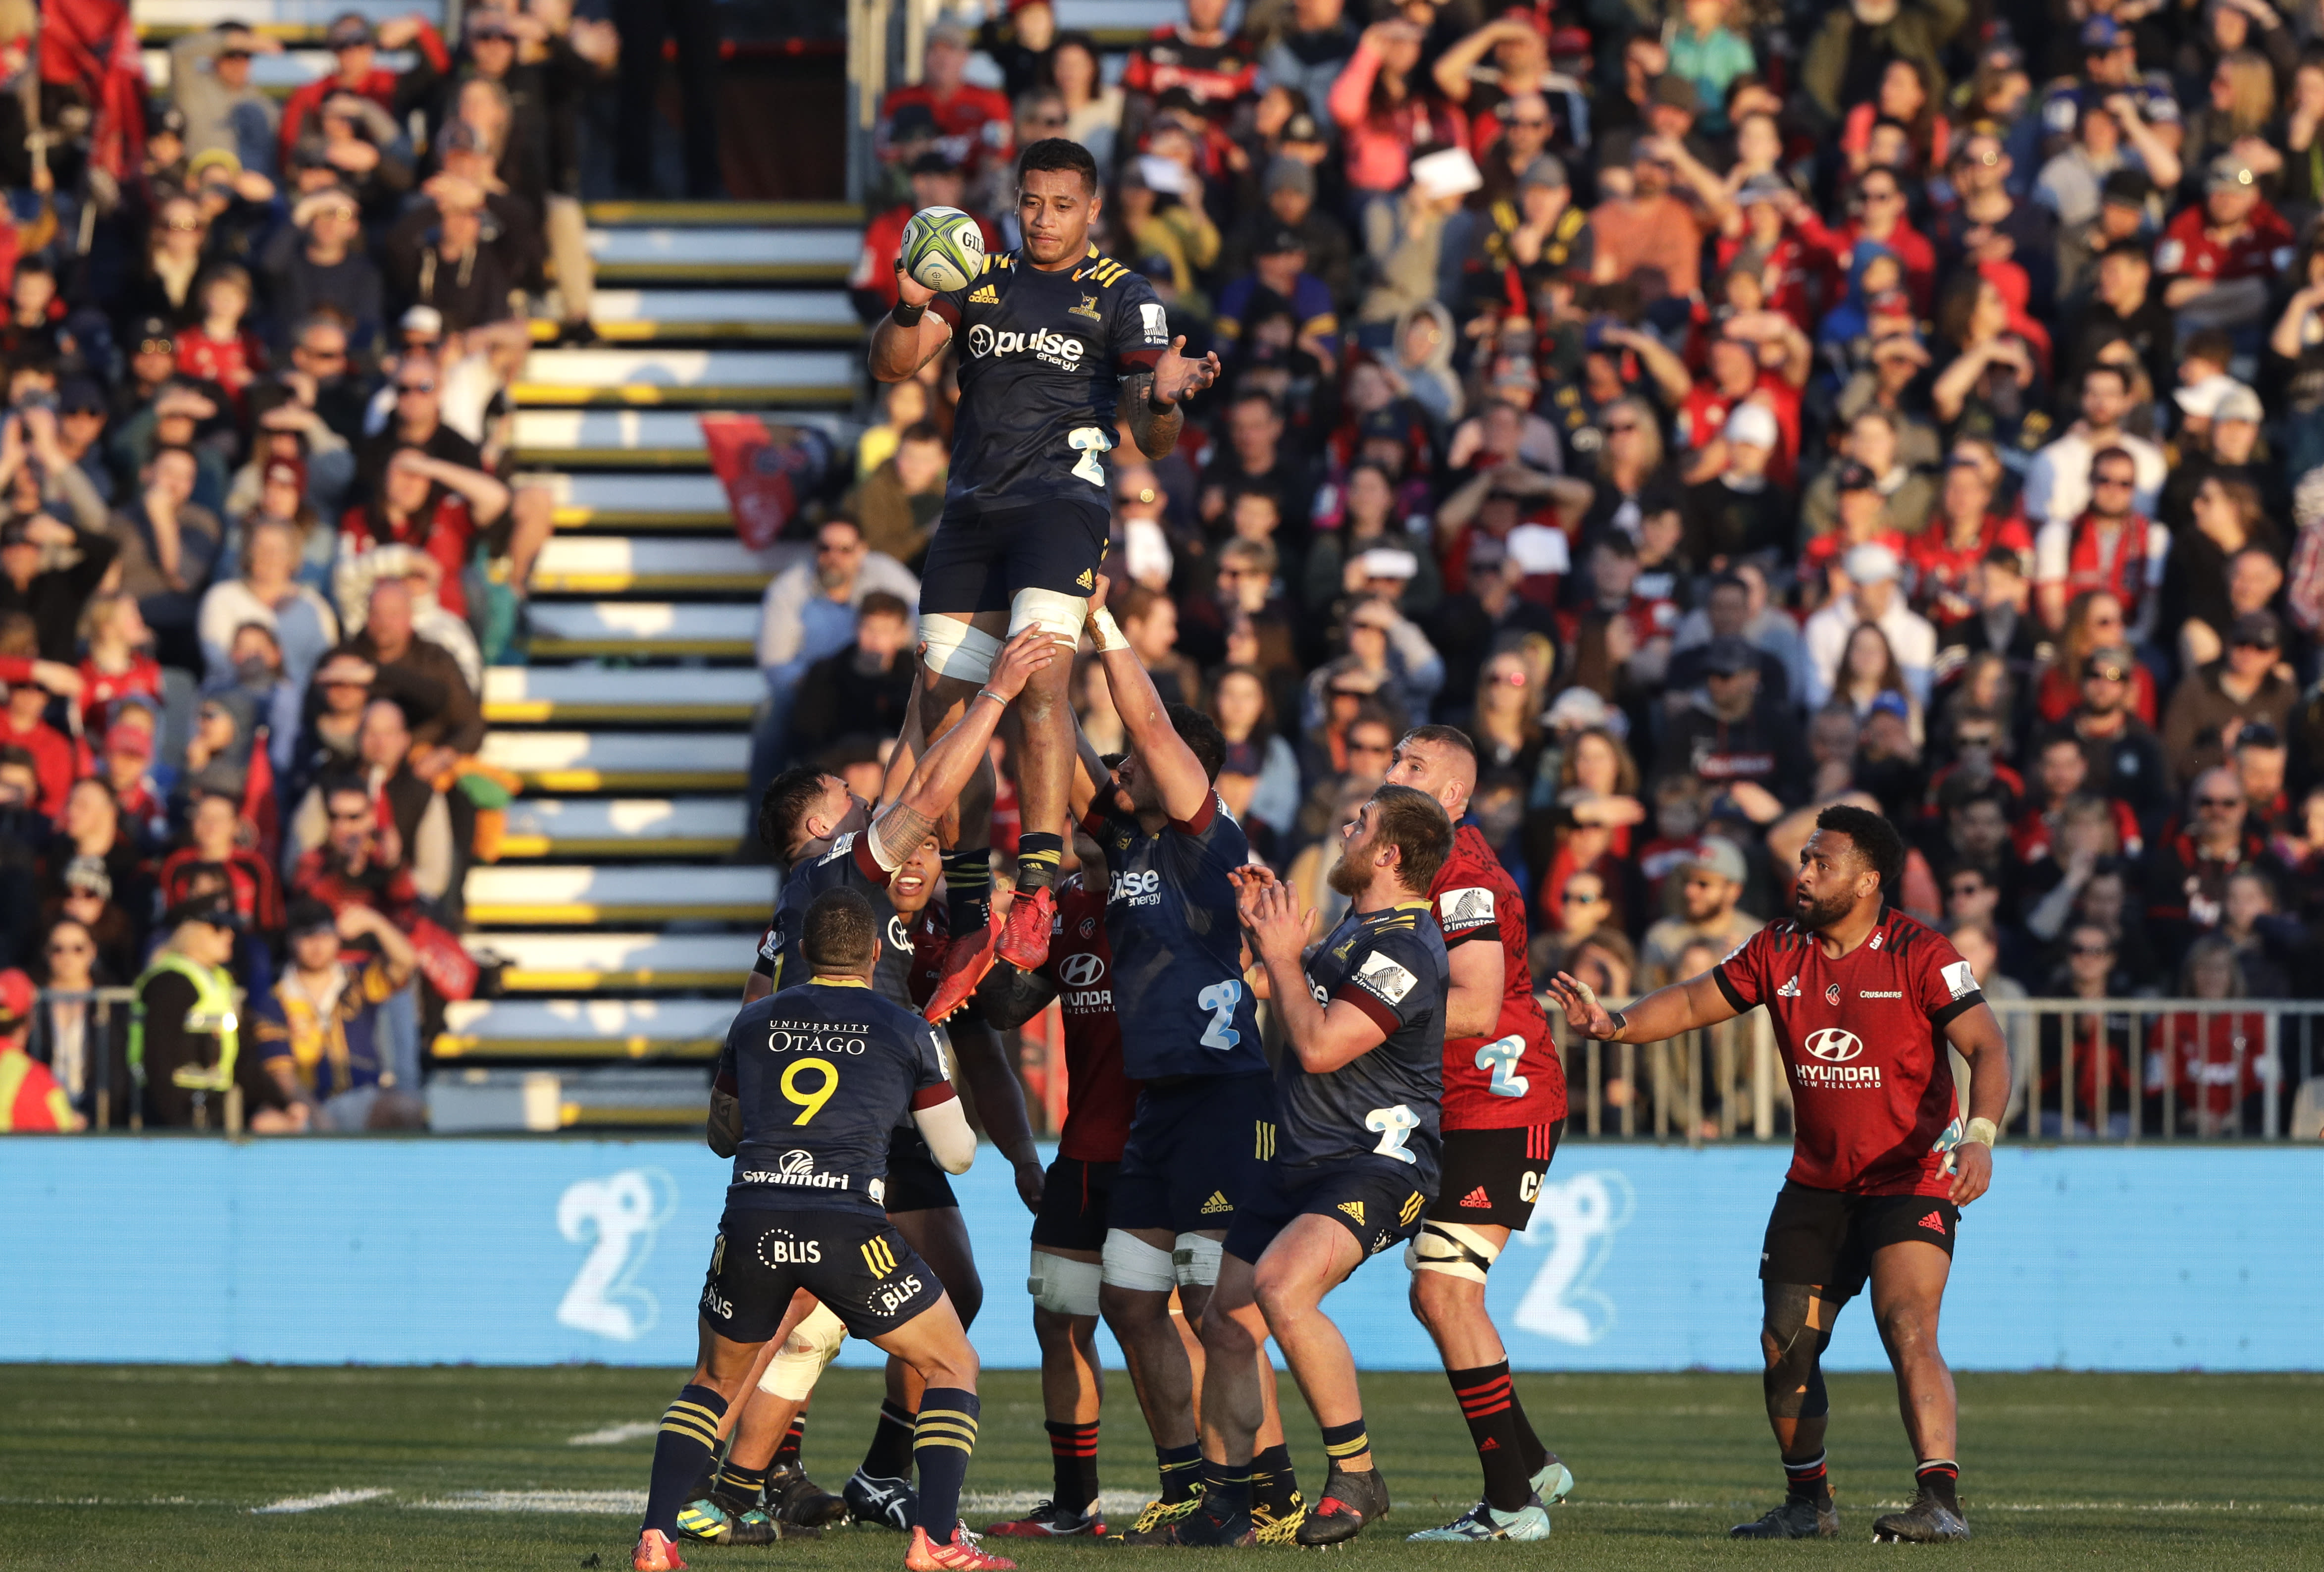 Covid Outbreak Causes Fresh Disruption To New Zealand Rugby